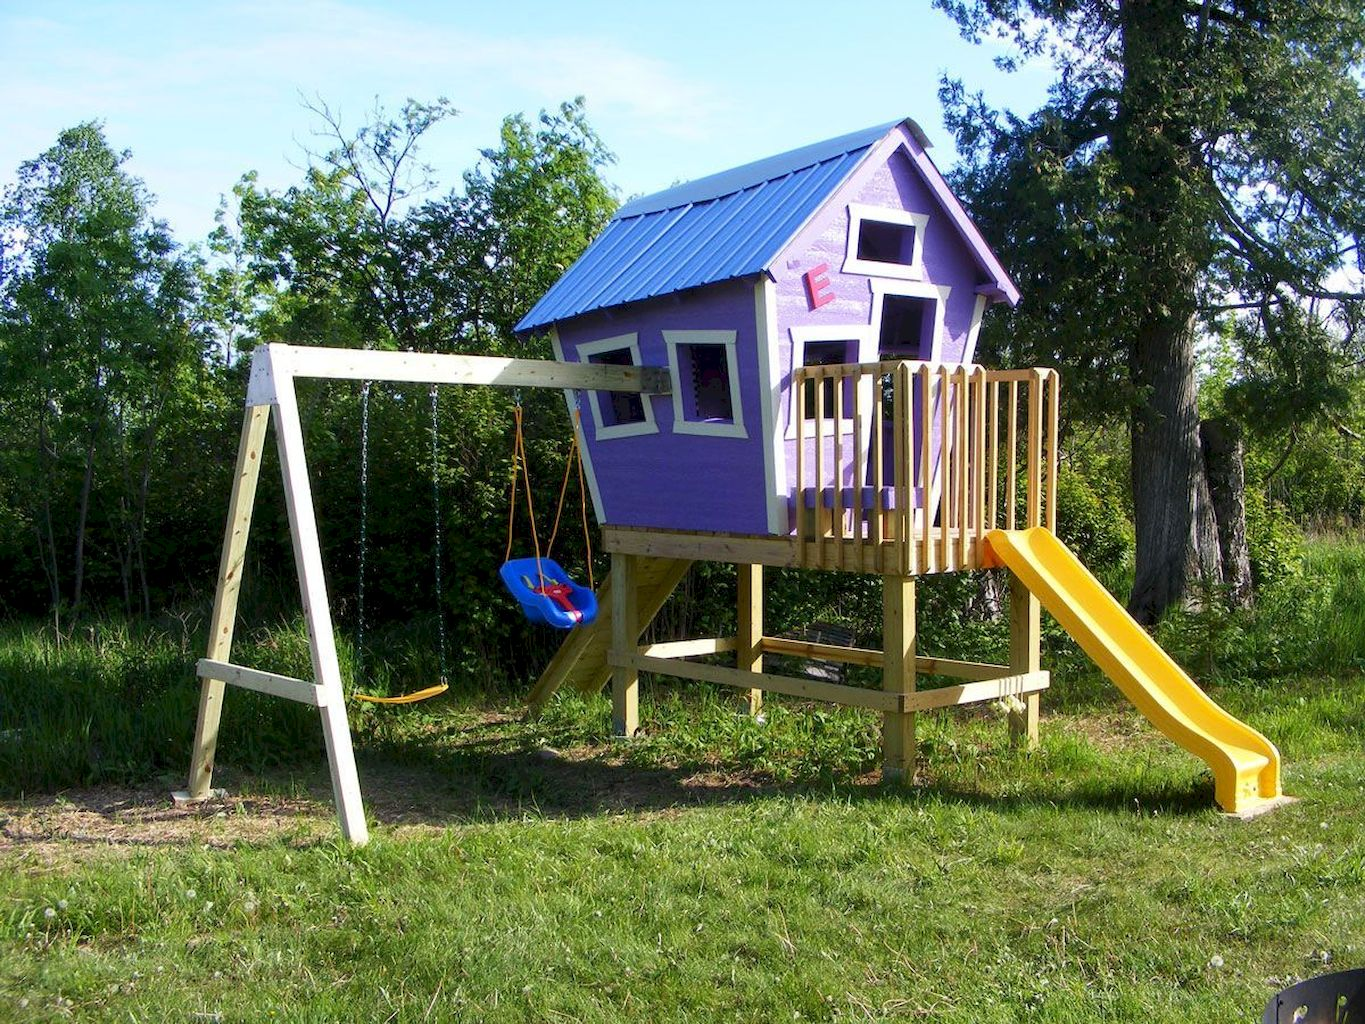 Stunning Playhouse Plan Into Your Existing Backyard Space